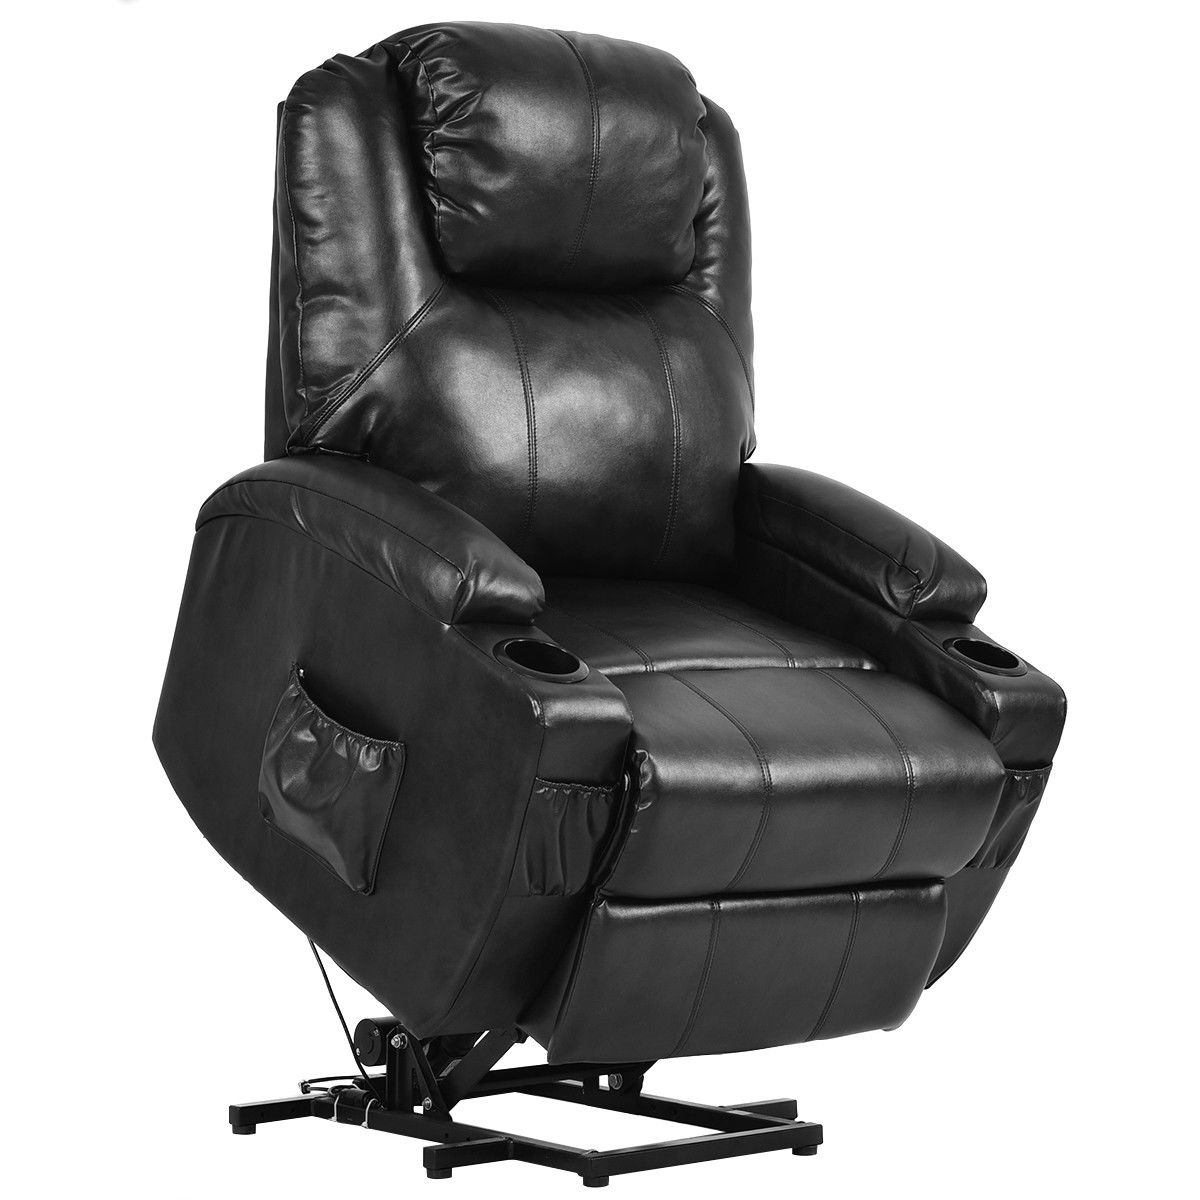 Costway Electric Power Lift Chair Recliner PU Leather Padded Seat w/ Remote & Cup Holder